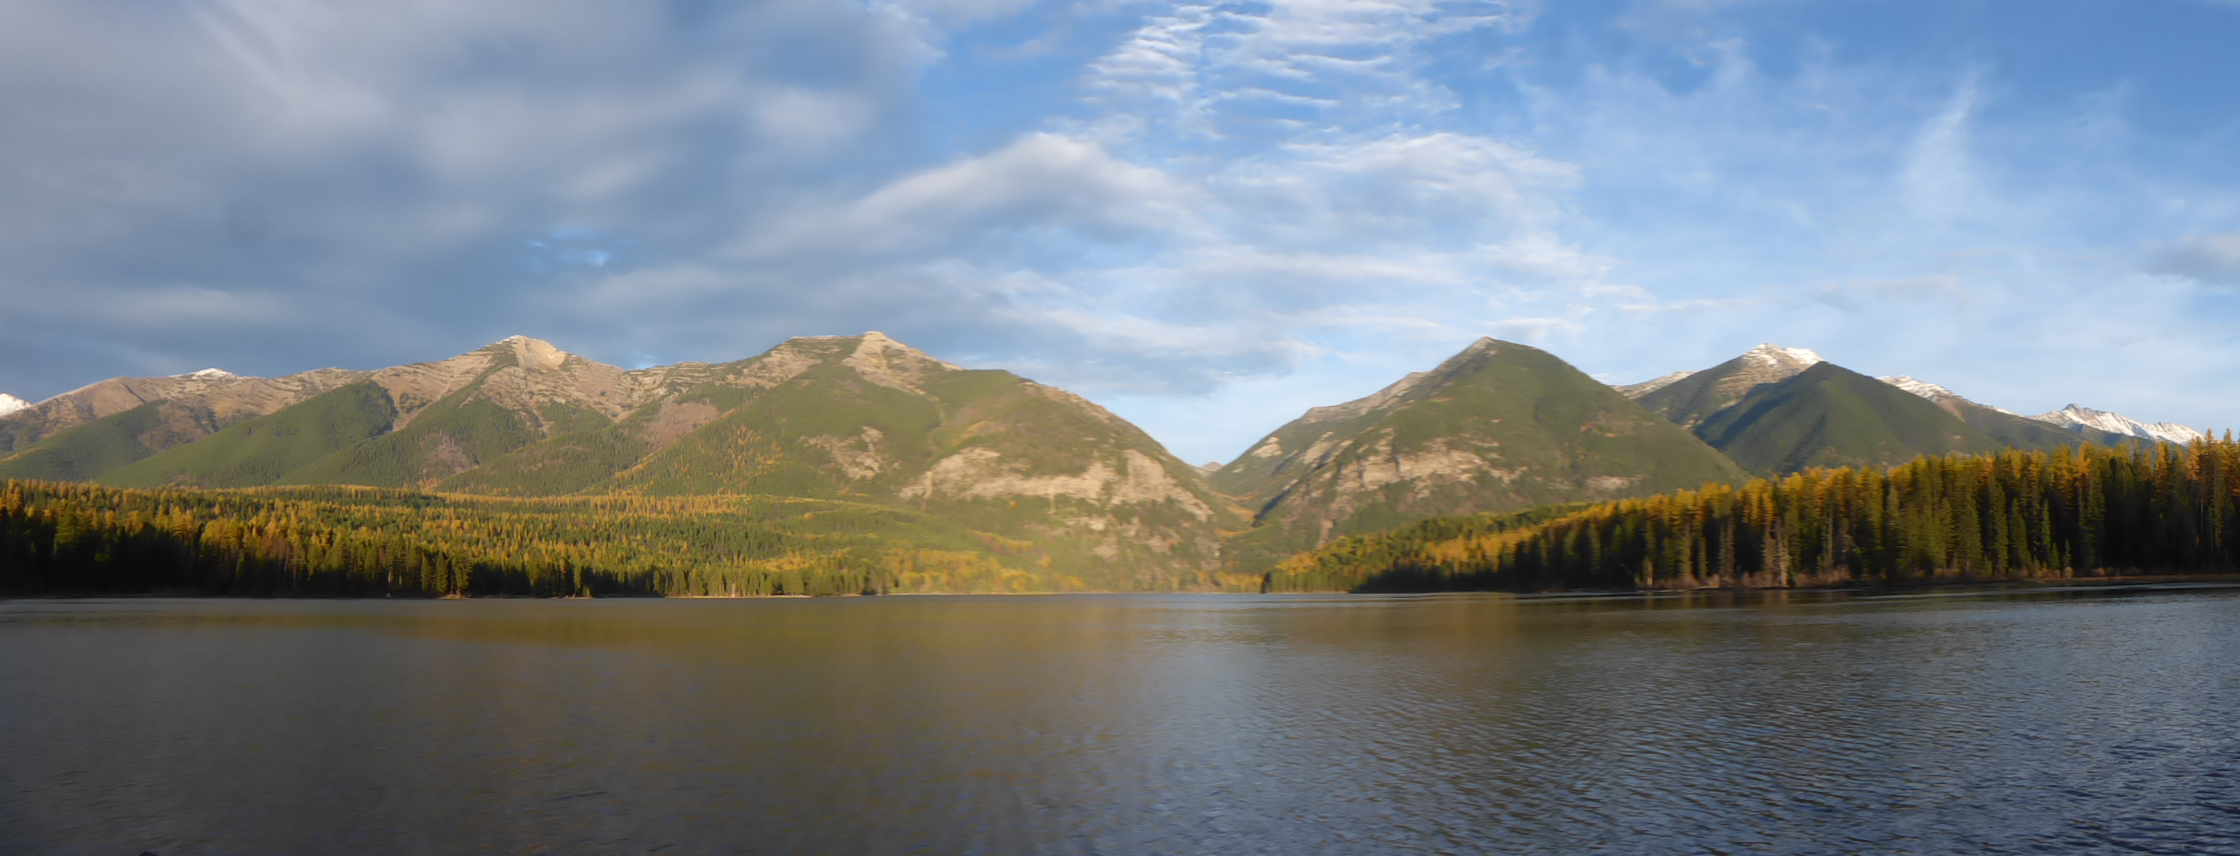 Another beautiful lake, an empty campground and the mountains.